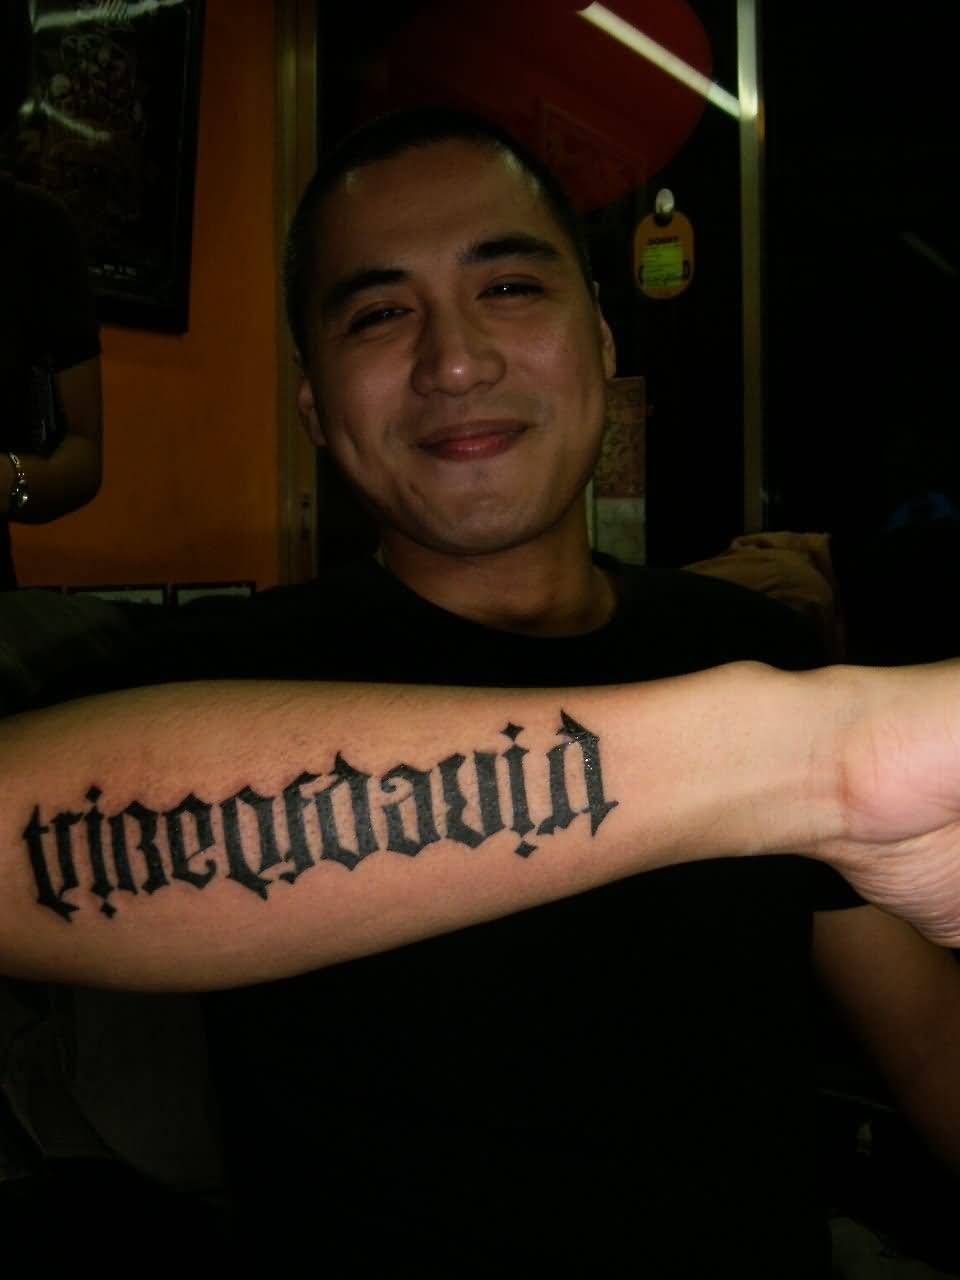 Forever Ambigram Tattoo For Men's Arm